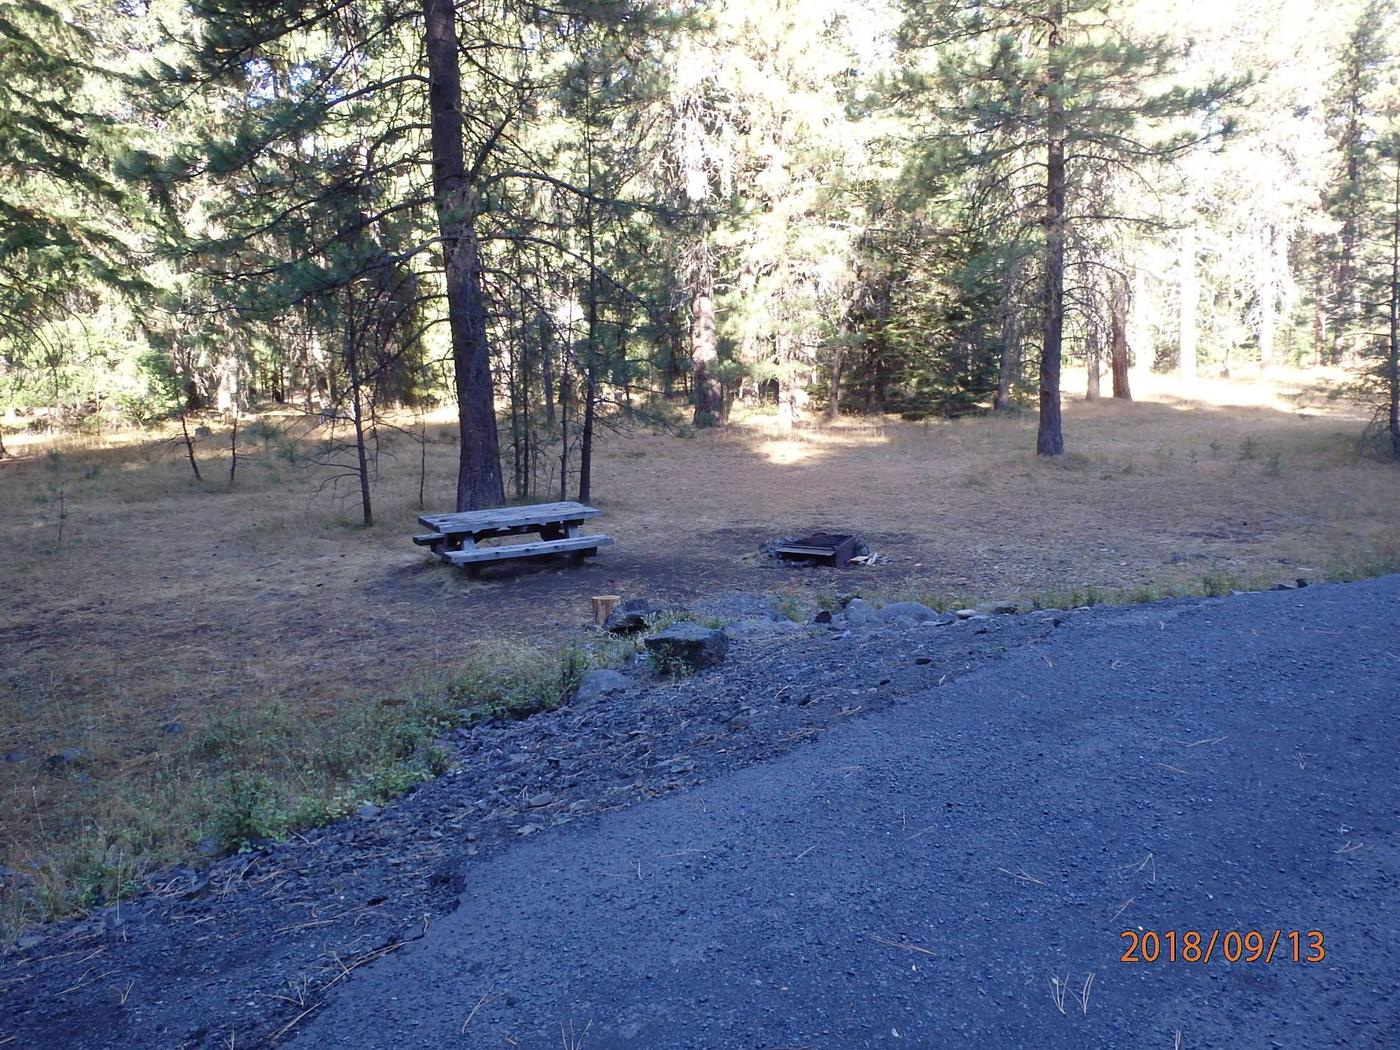 Kaner FlatThis site is a first come first serve, plenty of space for camping